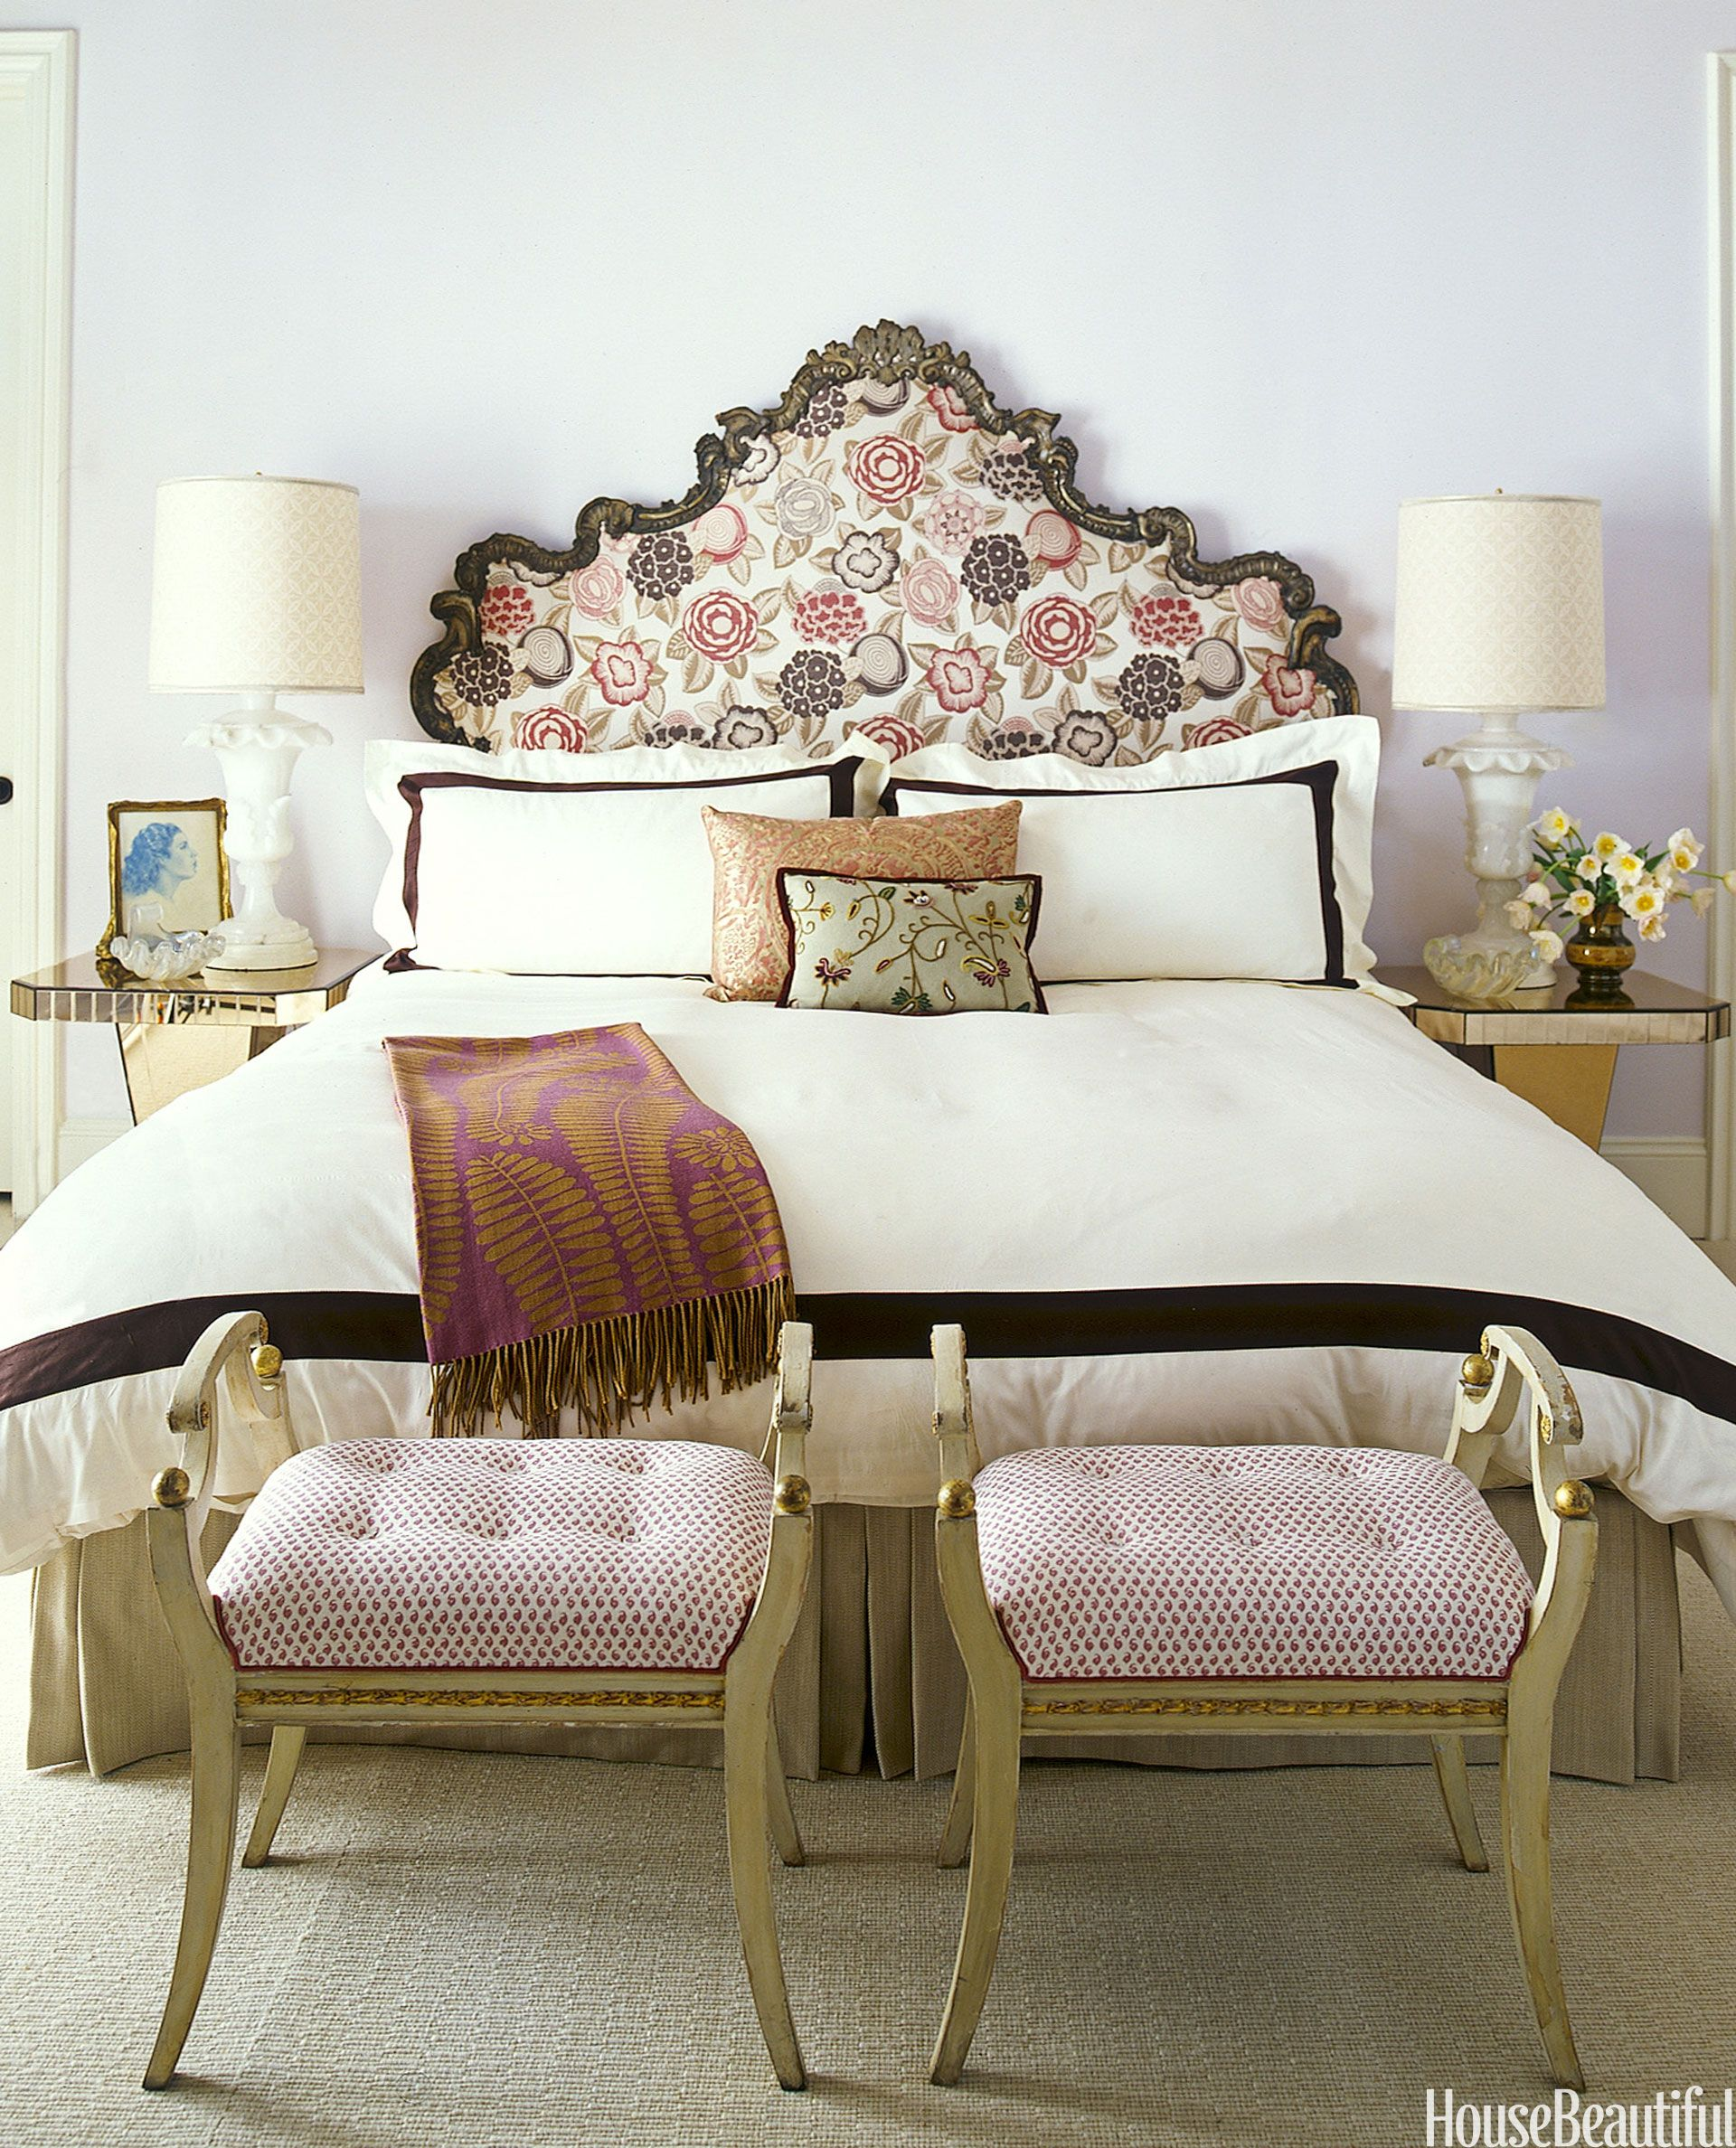 12 romantic bedrooms ideas for bedroom decor